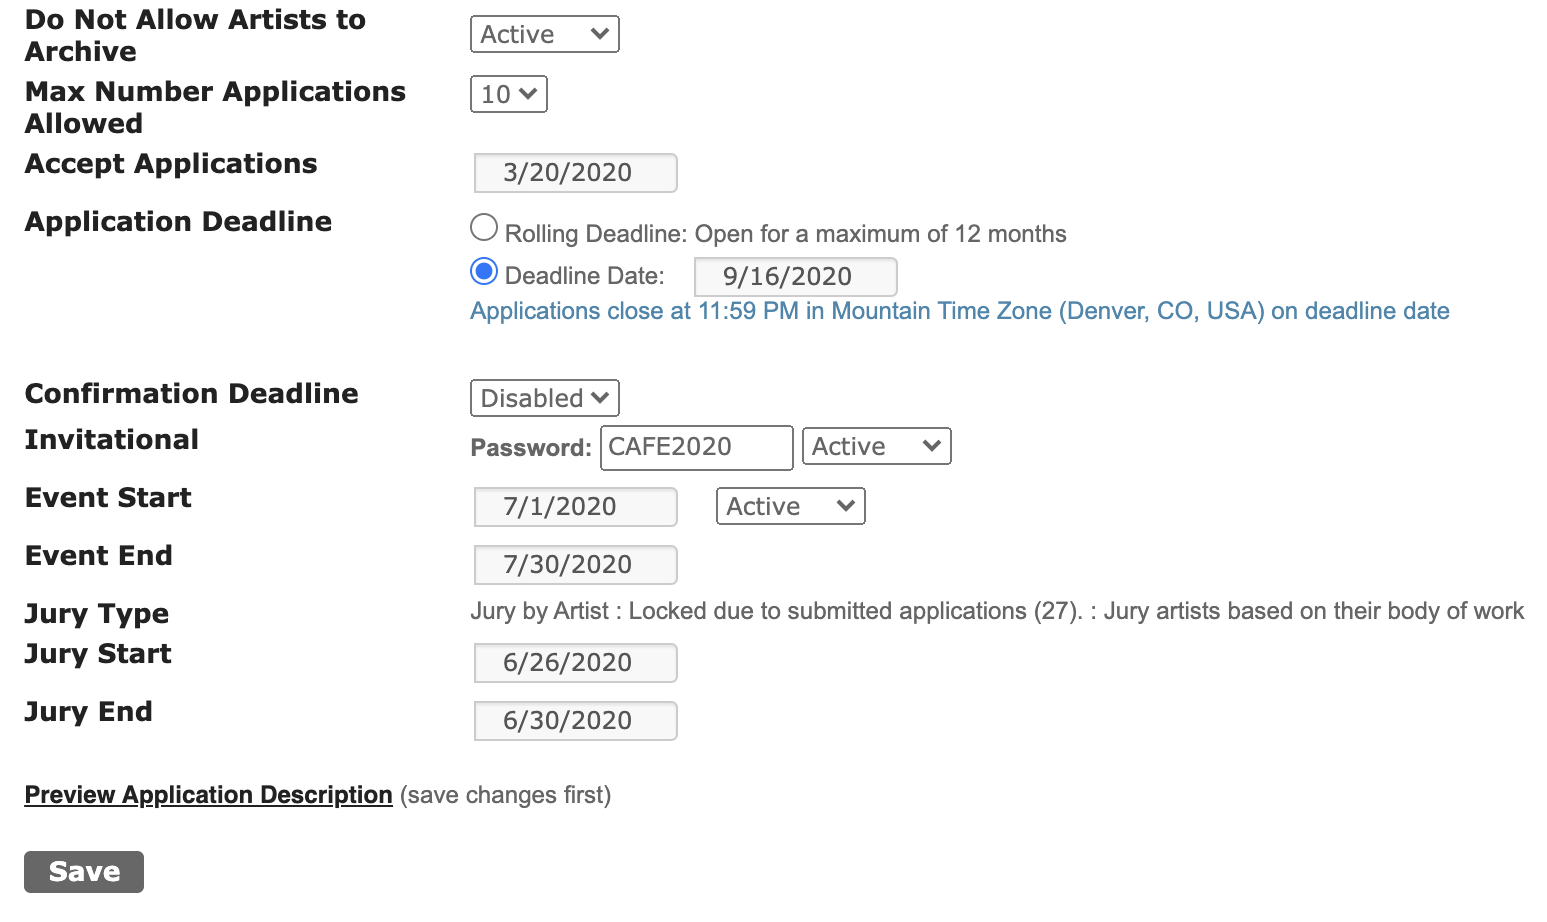 Screenshot of the final section of the Event Information that highlights the key dates to set for the call and additional settings.